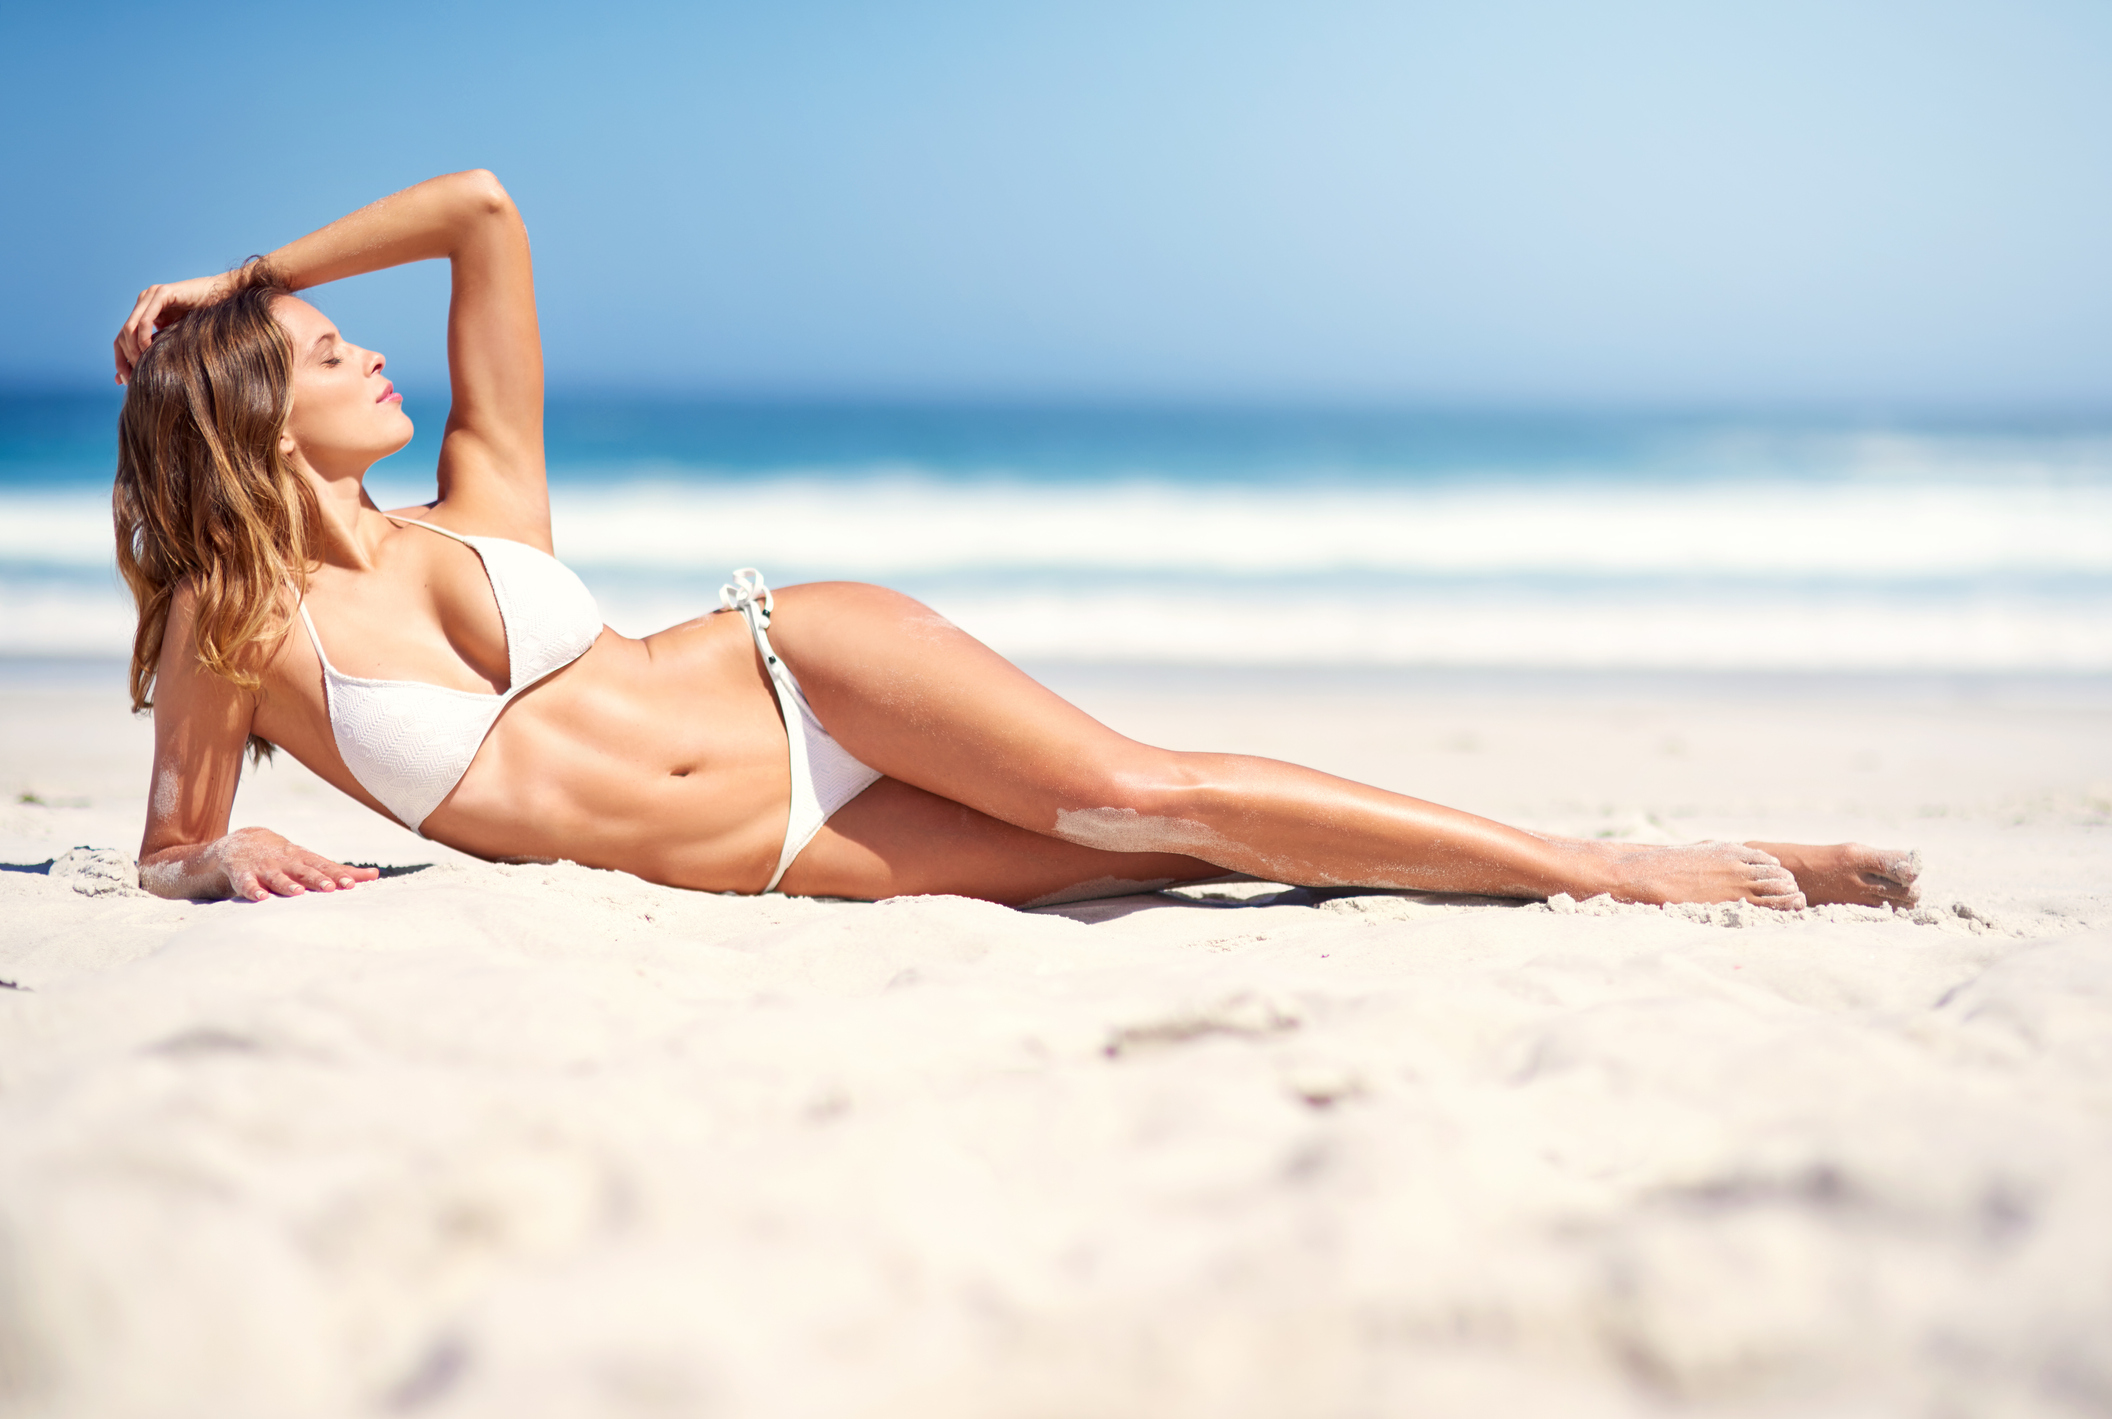 Coolsculpting by All About You Medical Spa